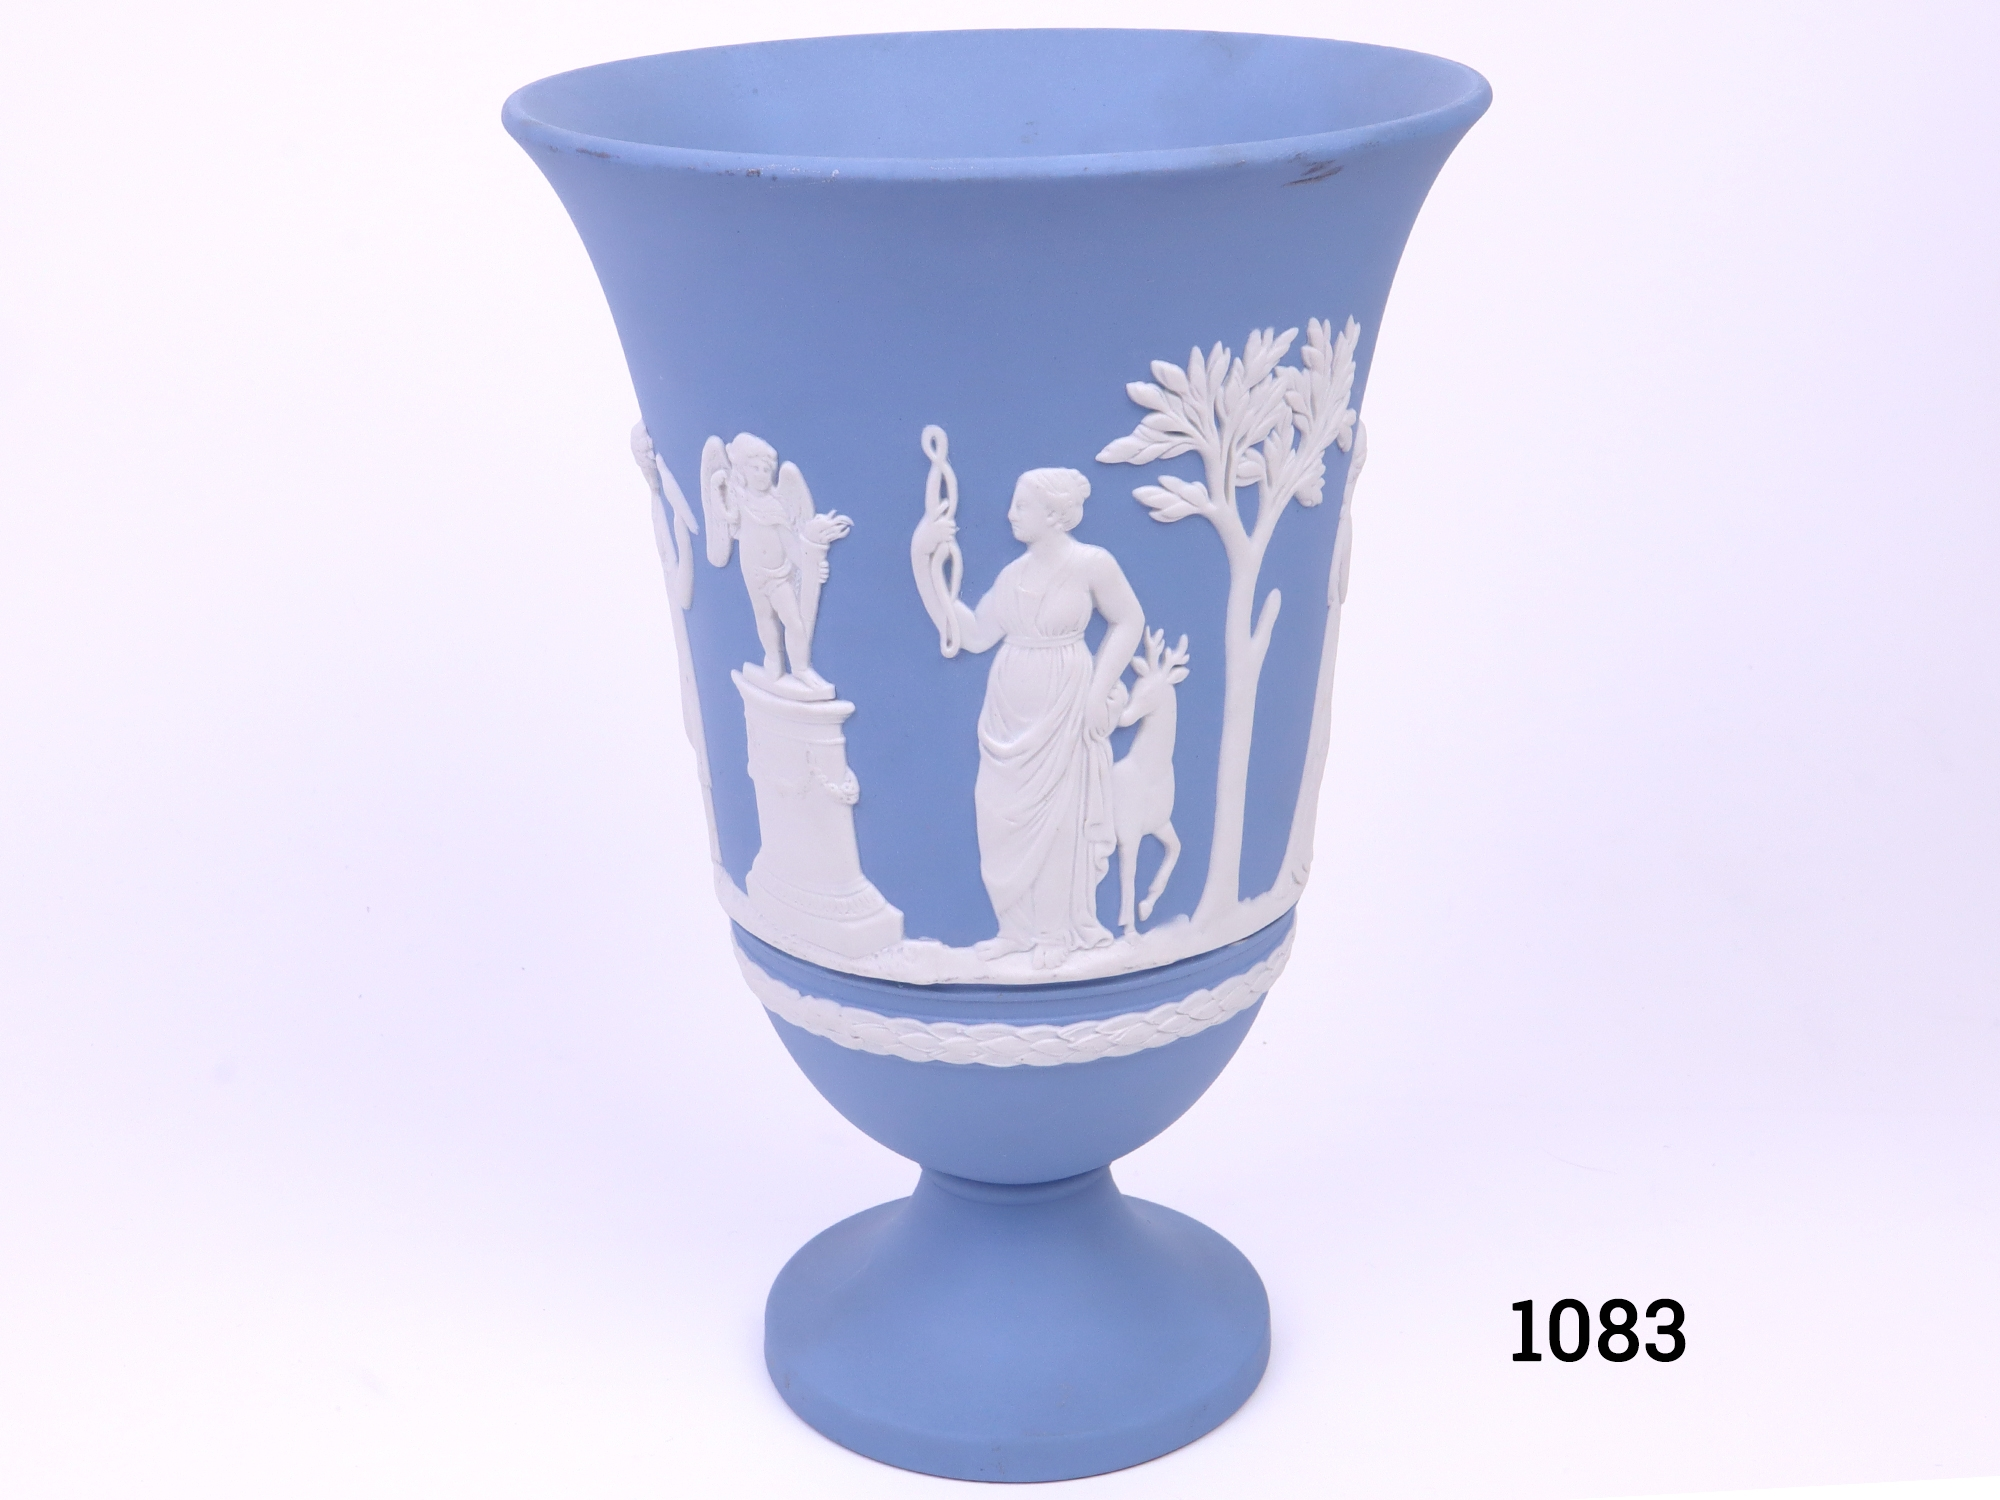 Vintage Wedgwood Jasperware vase in the classic light blue c1975 Measures 76mm in diameter at base and 130mm in diameter across the top Main photo of vase looking straight on